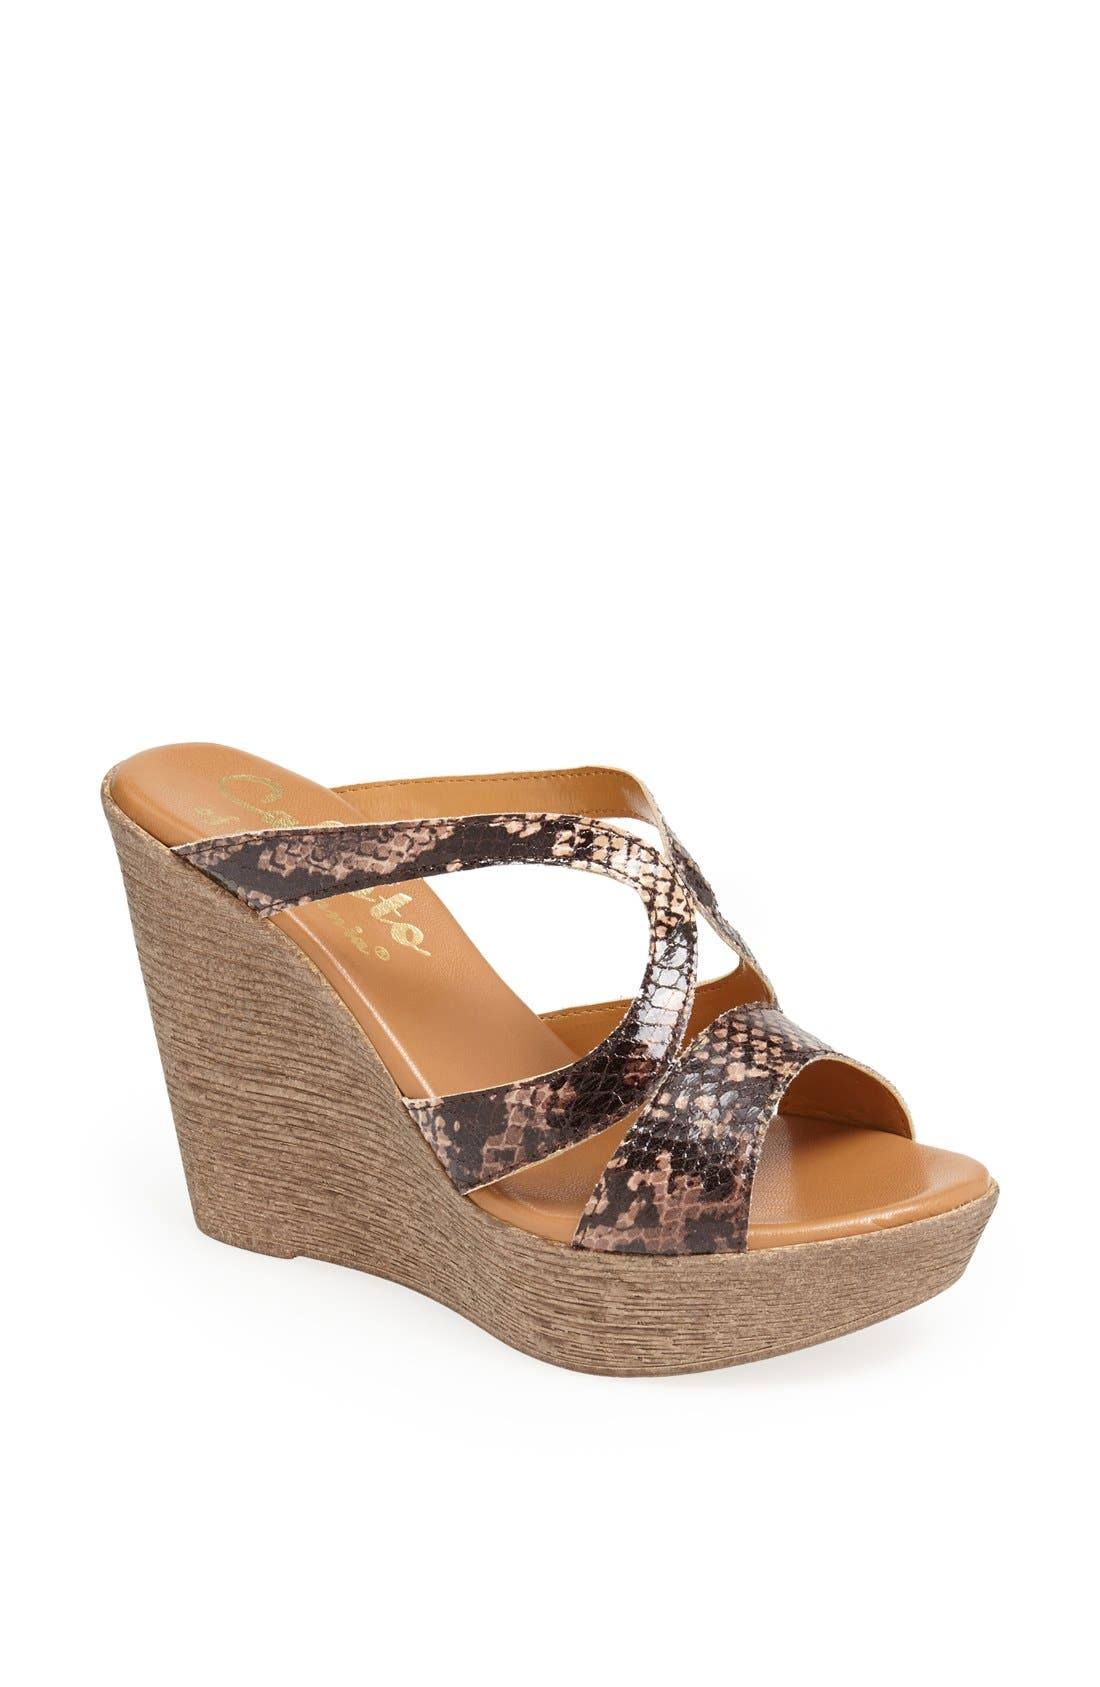 Alternate Image 1 Selected - Callisto 'Hedie' Wedge Sandal